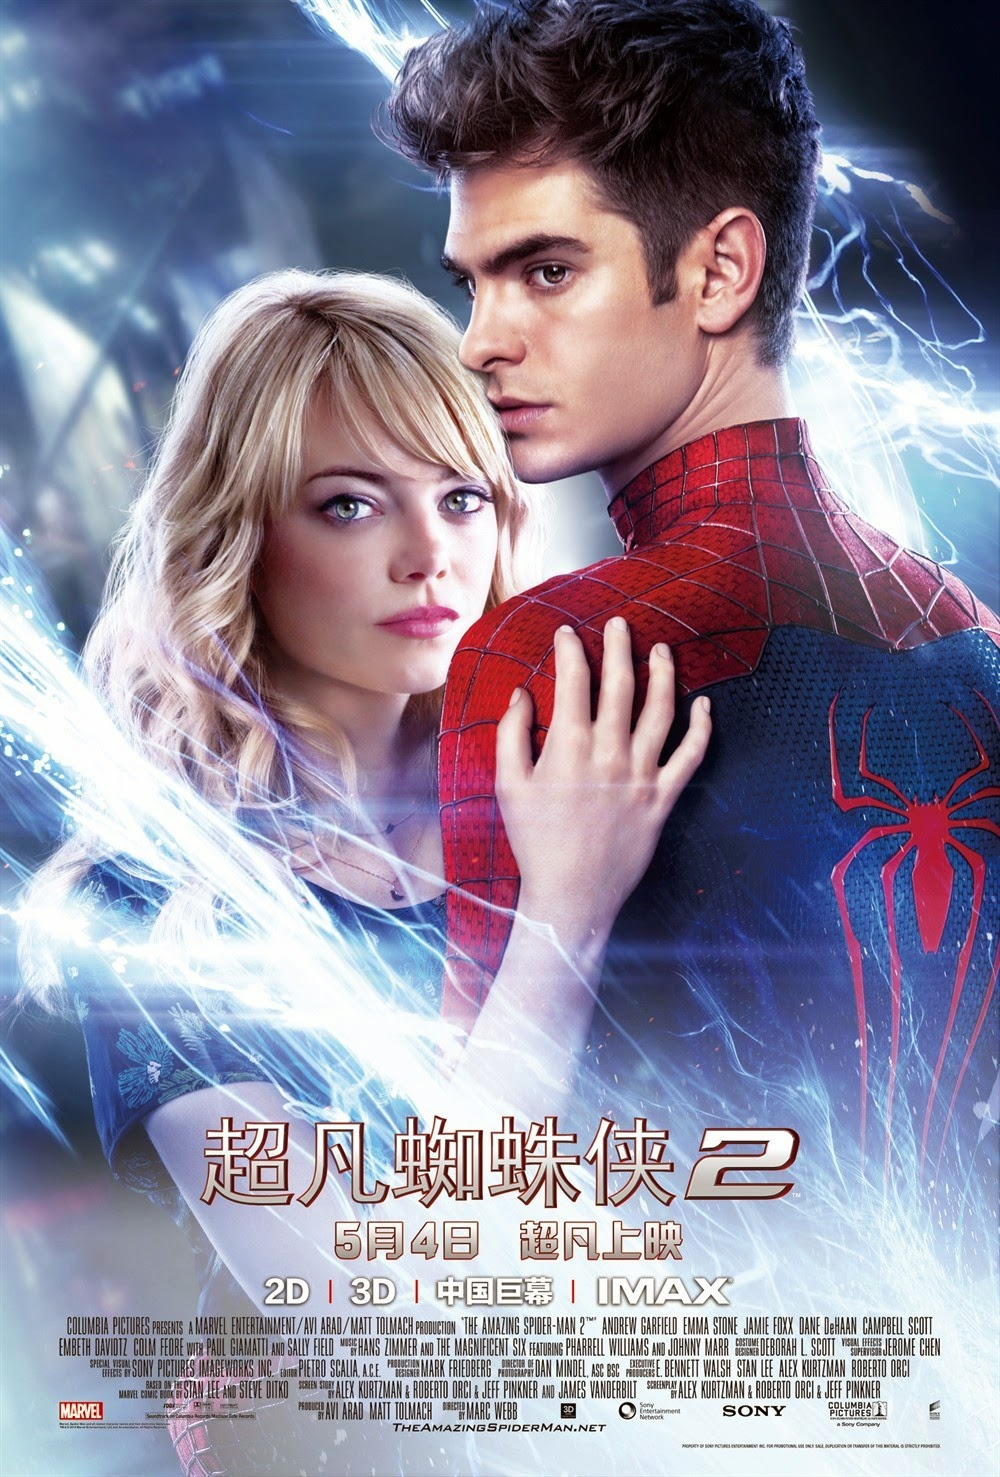 http://1.bp.blogspot.com/-Ne4DipIvhfQ/UydSrsDXbQI/AAAAAAAAUyw/2_VeYQXIZi8/s1600/The_Amazing_Spider_Man_2_New_Poster_International_b_JPosters.jpg